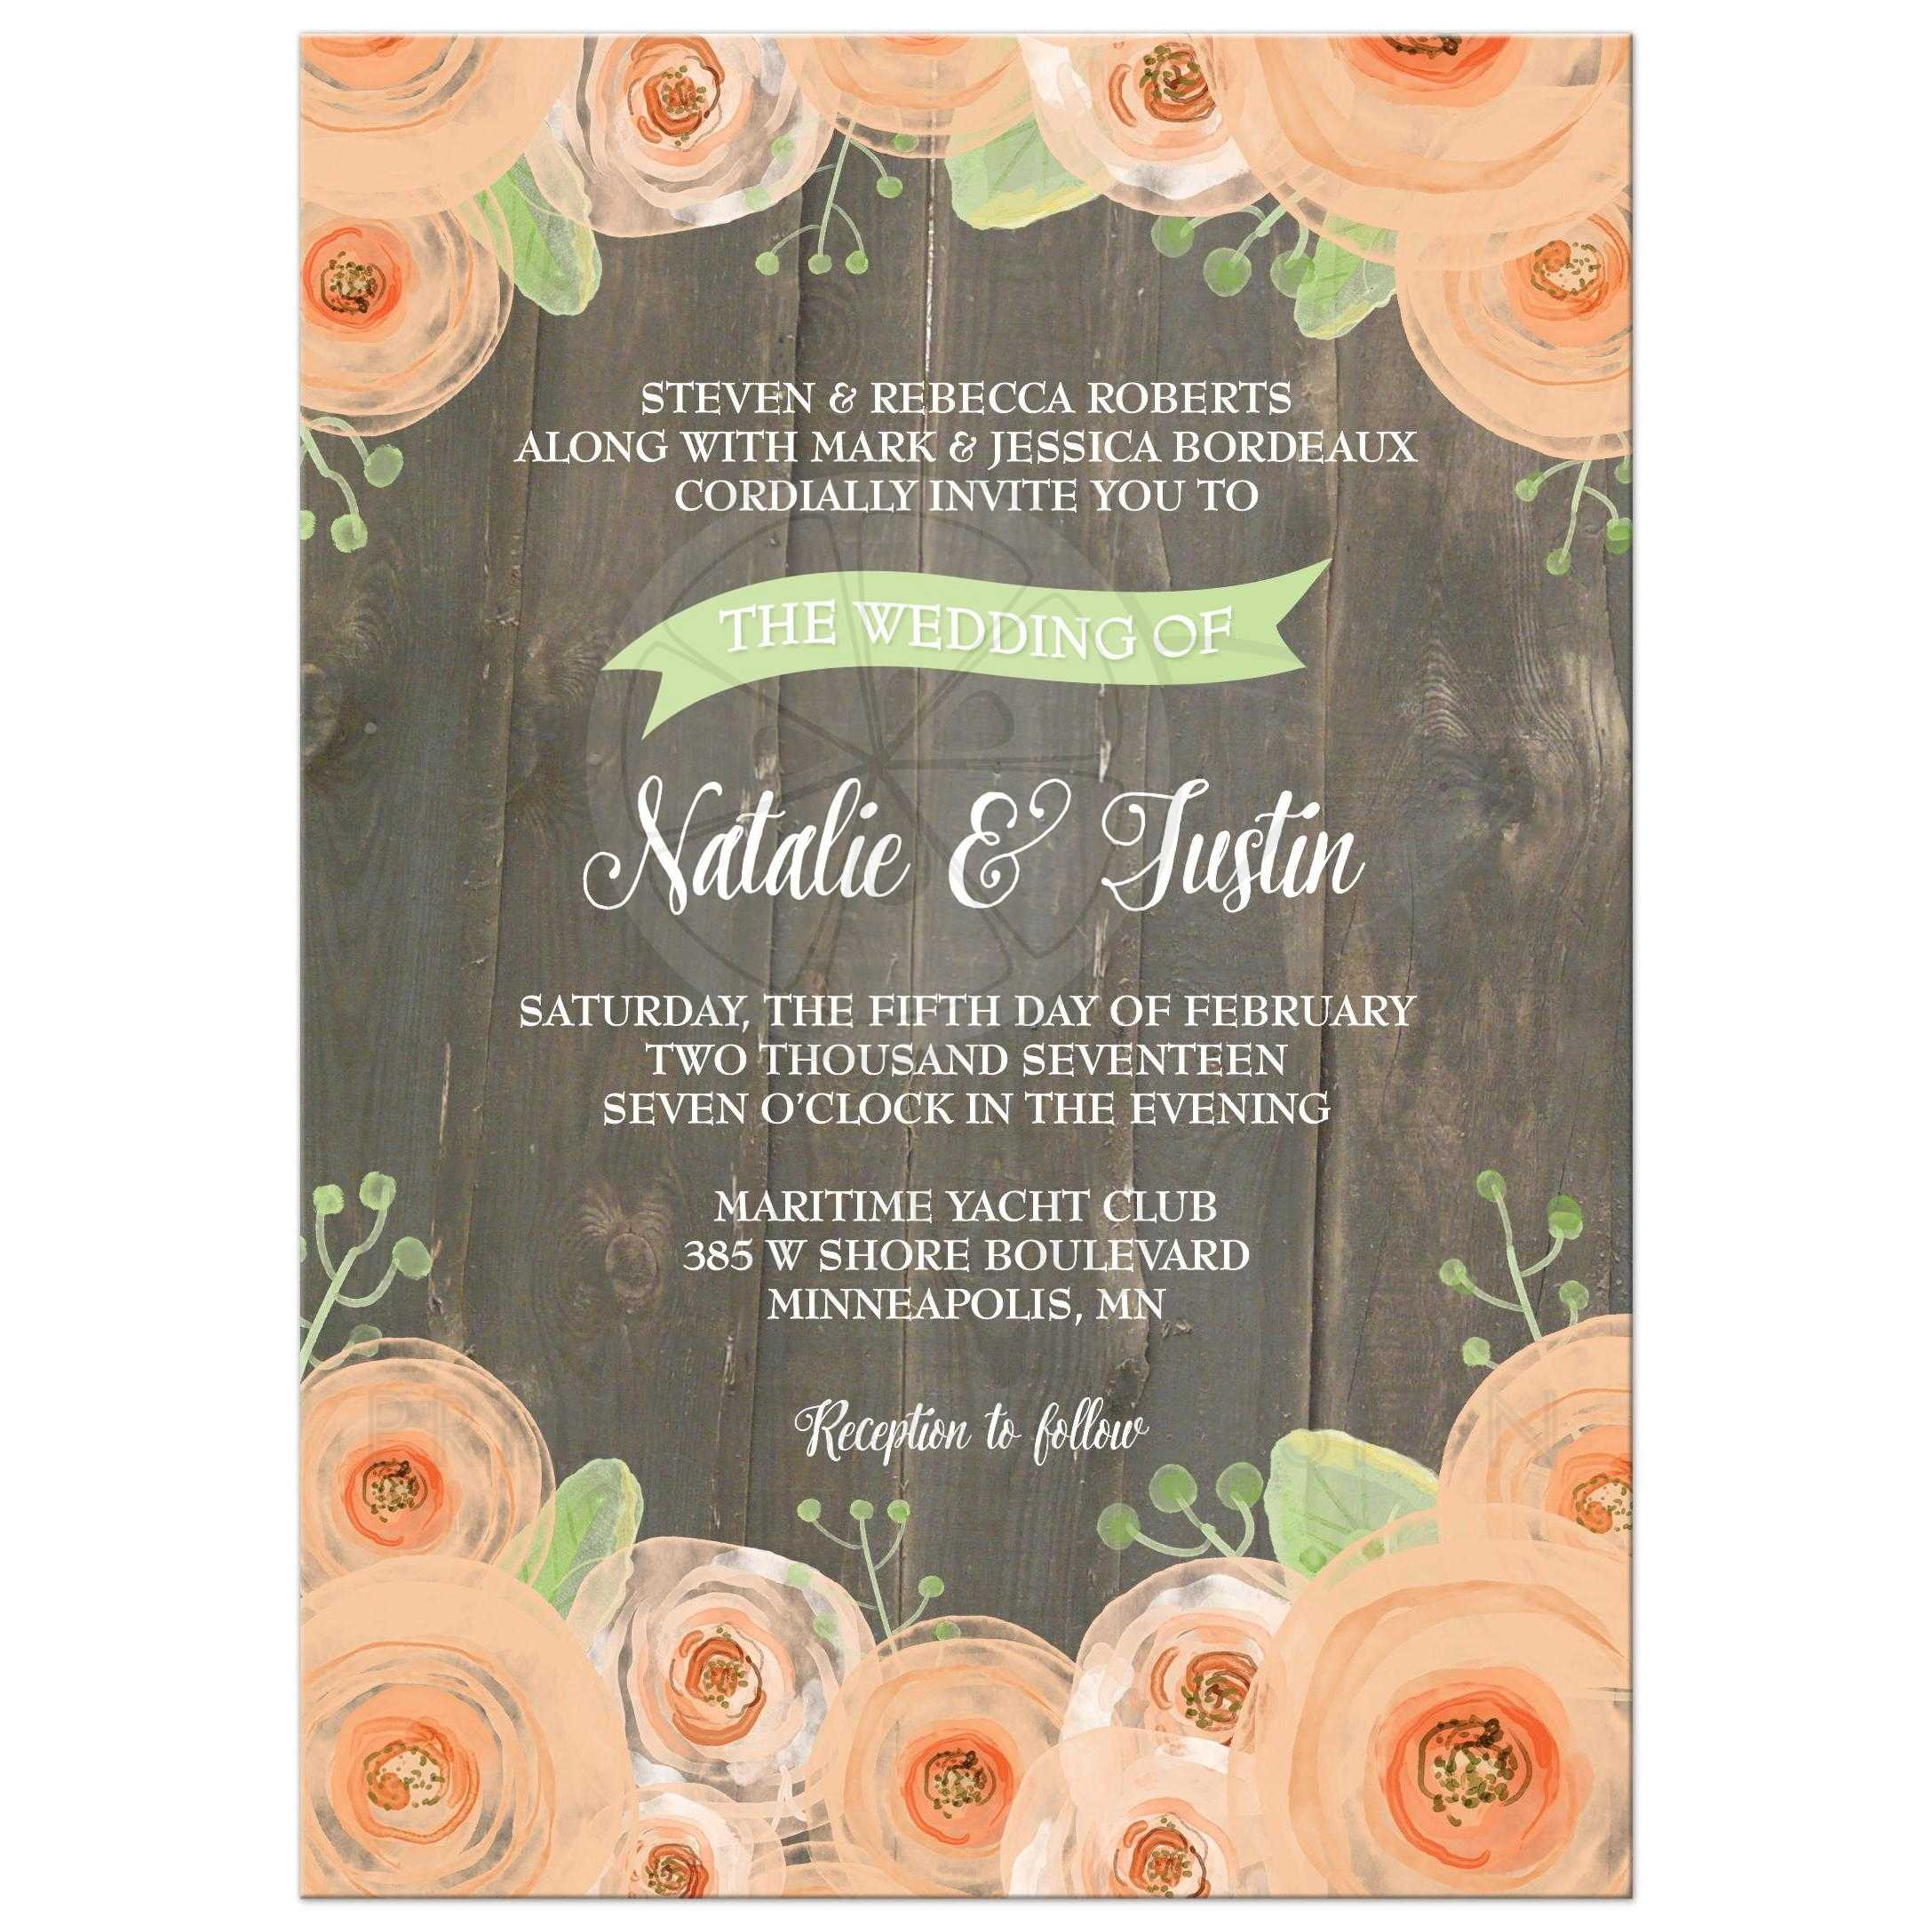 Rustic Wood With Peach Watercolor Flowers Wedding Invite: Rustic Wood Floral Wedding Invitations At Reisefeber.org